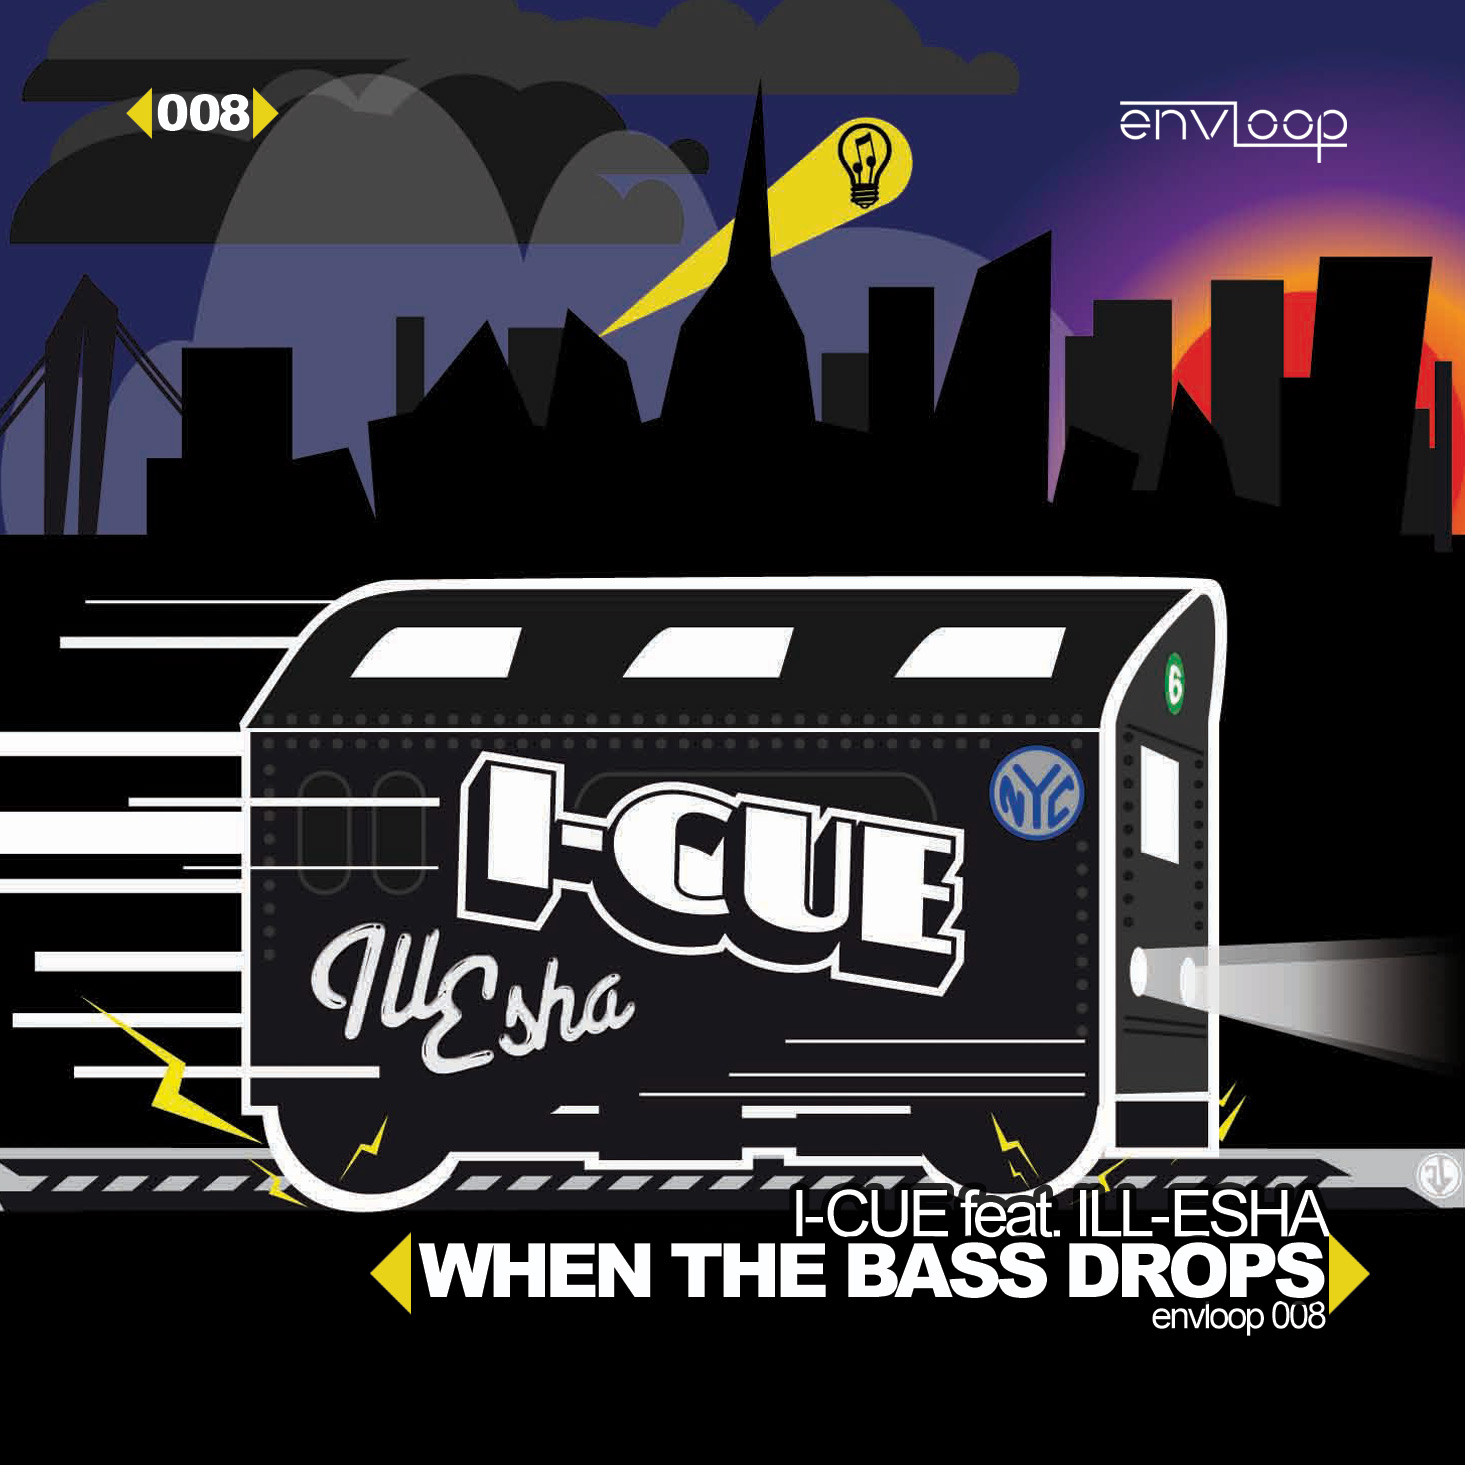 I-Cue feat. Ill-Esha – When The Bass Drops (mightiness VIP-RMX)